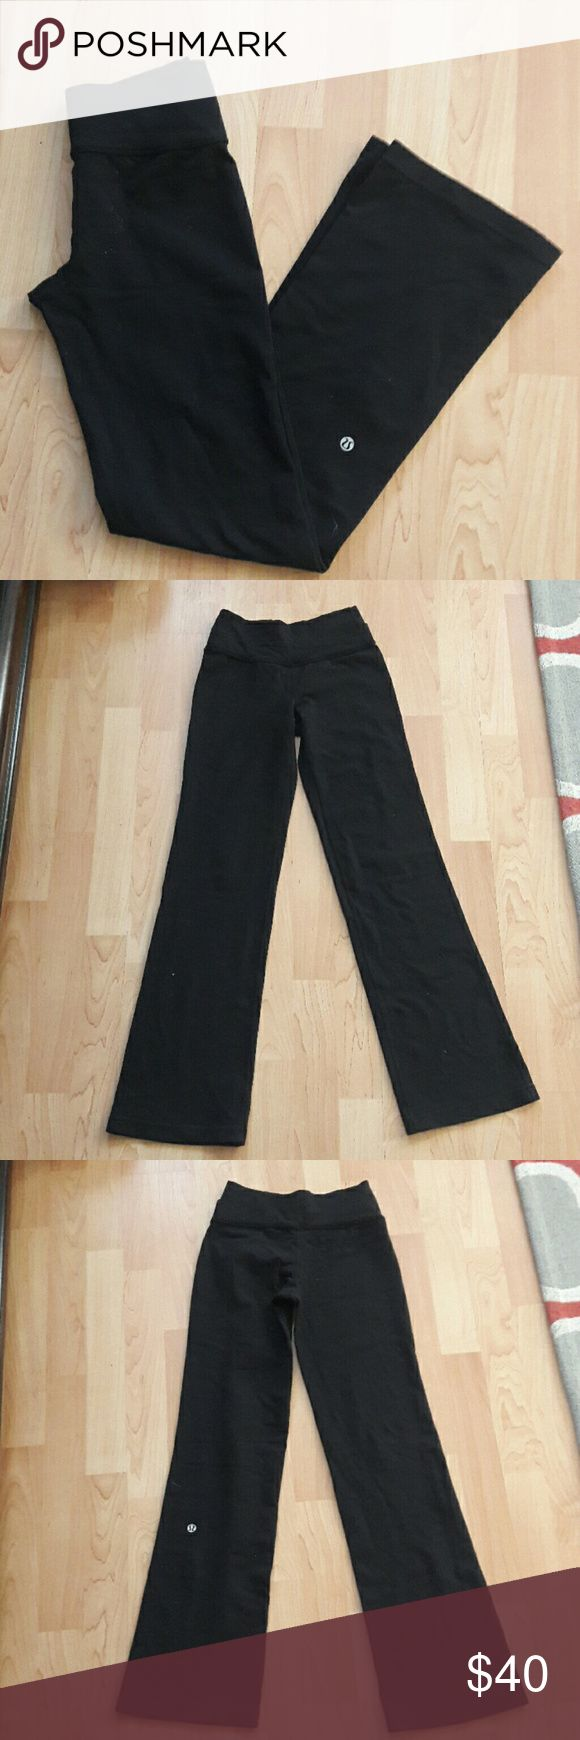 Lululemon yoga pants size 2 In good condition  Size is 2tall but I took these to be tailored at a Lululemon store so it is profesonally done !  As shown in photo. I'm 5'2 and these fit great! It is like a petite size 2! Very comfy! :-) Photos of models are not axrHal pant photos but look exactly the same when wearing :-)  Checkout My listings for more awesome stuff! lululemon athletica Pants Leggings